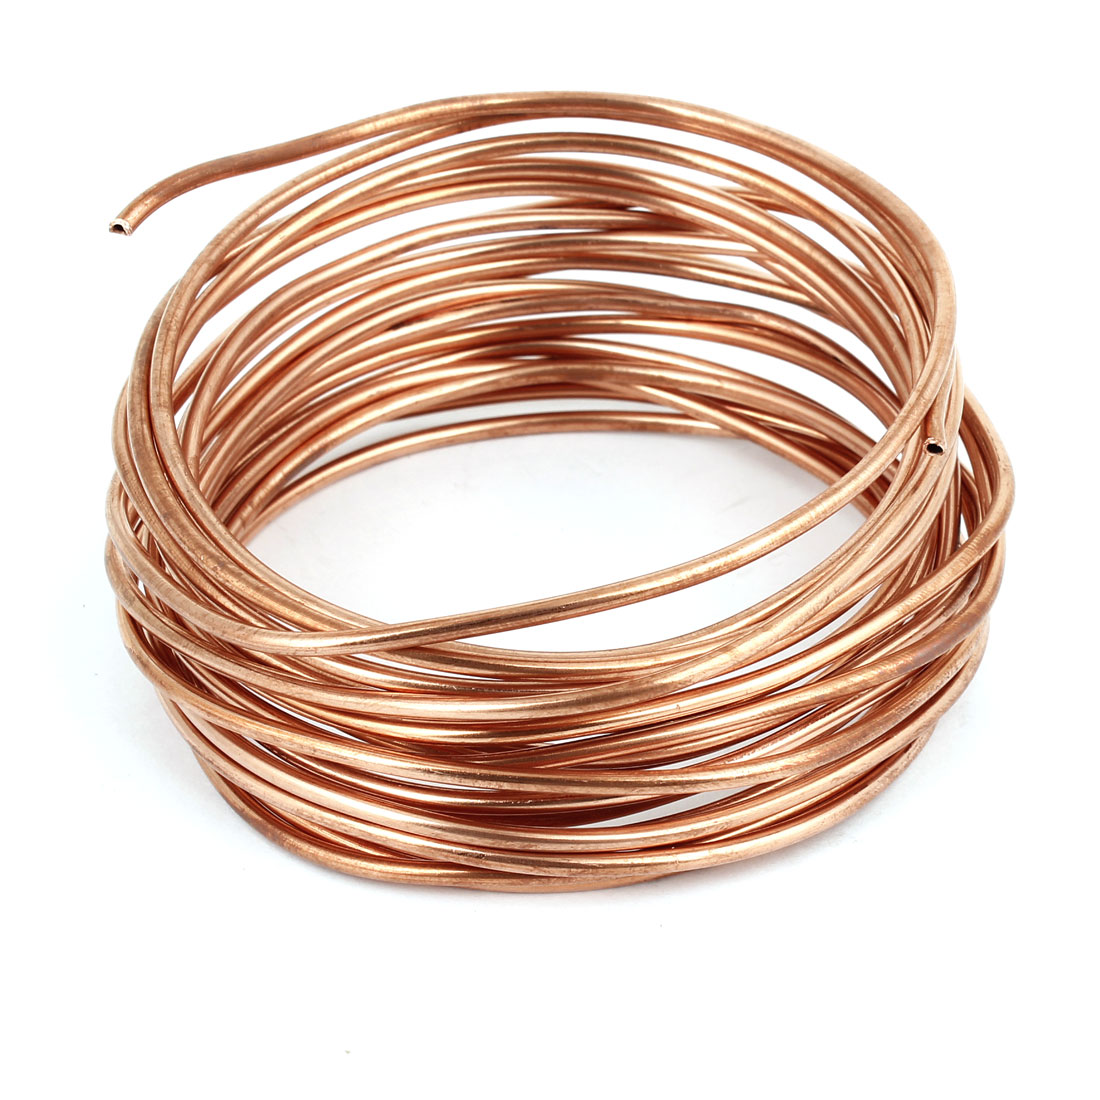 5M 16Ft Length Copper Tone Refrigerator Refrigeration Tubing Coil